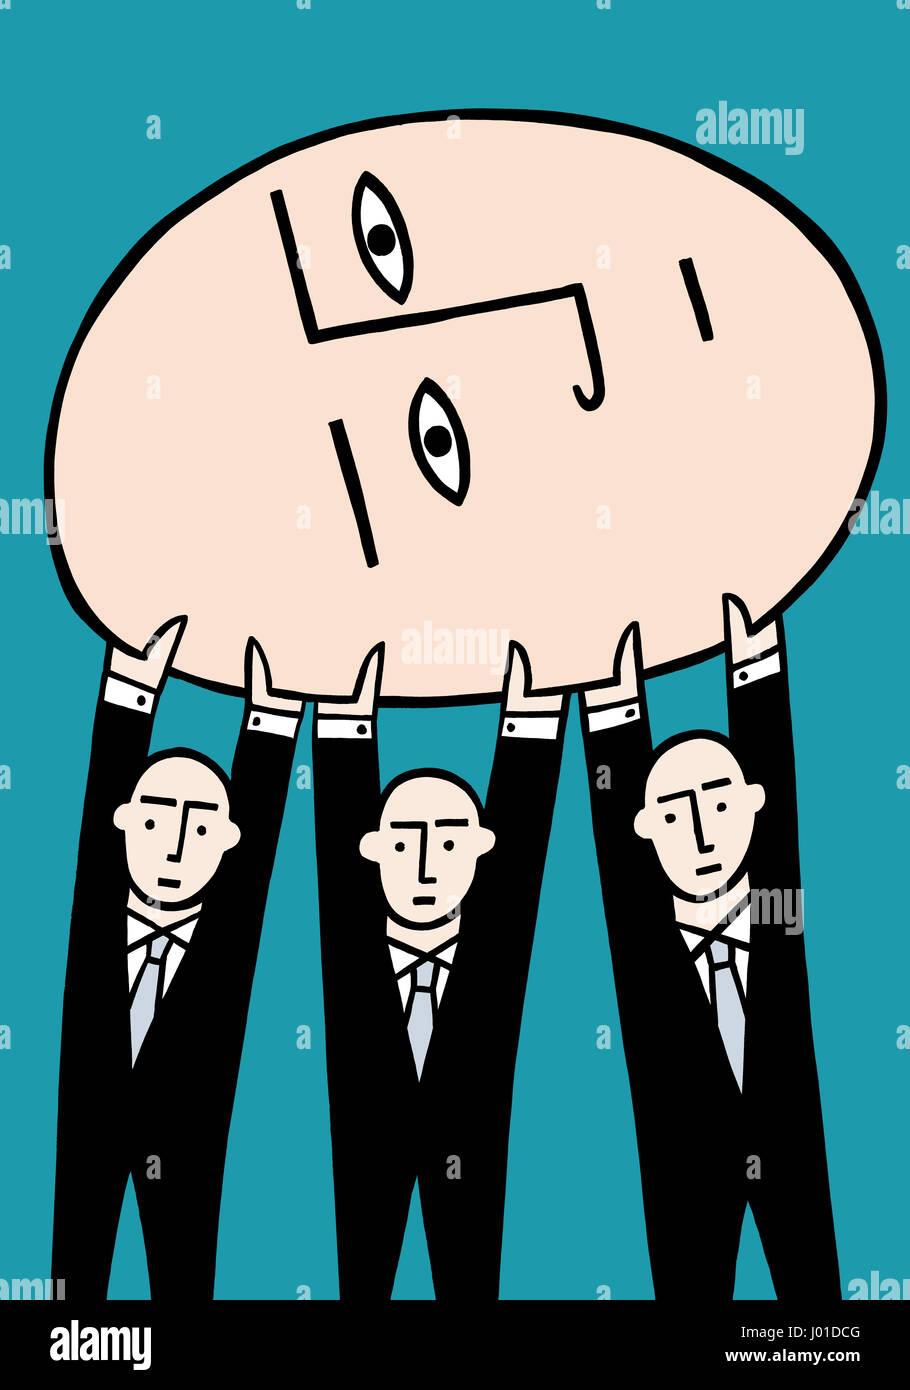 We can do it together. A business illustration about team work.Stock Photo